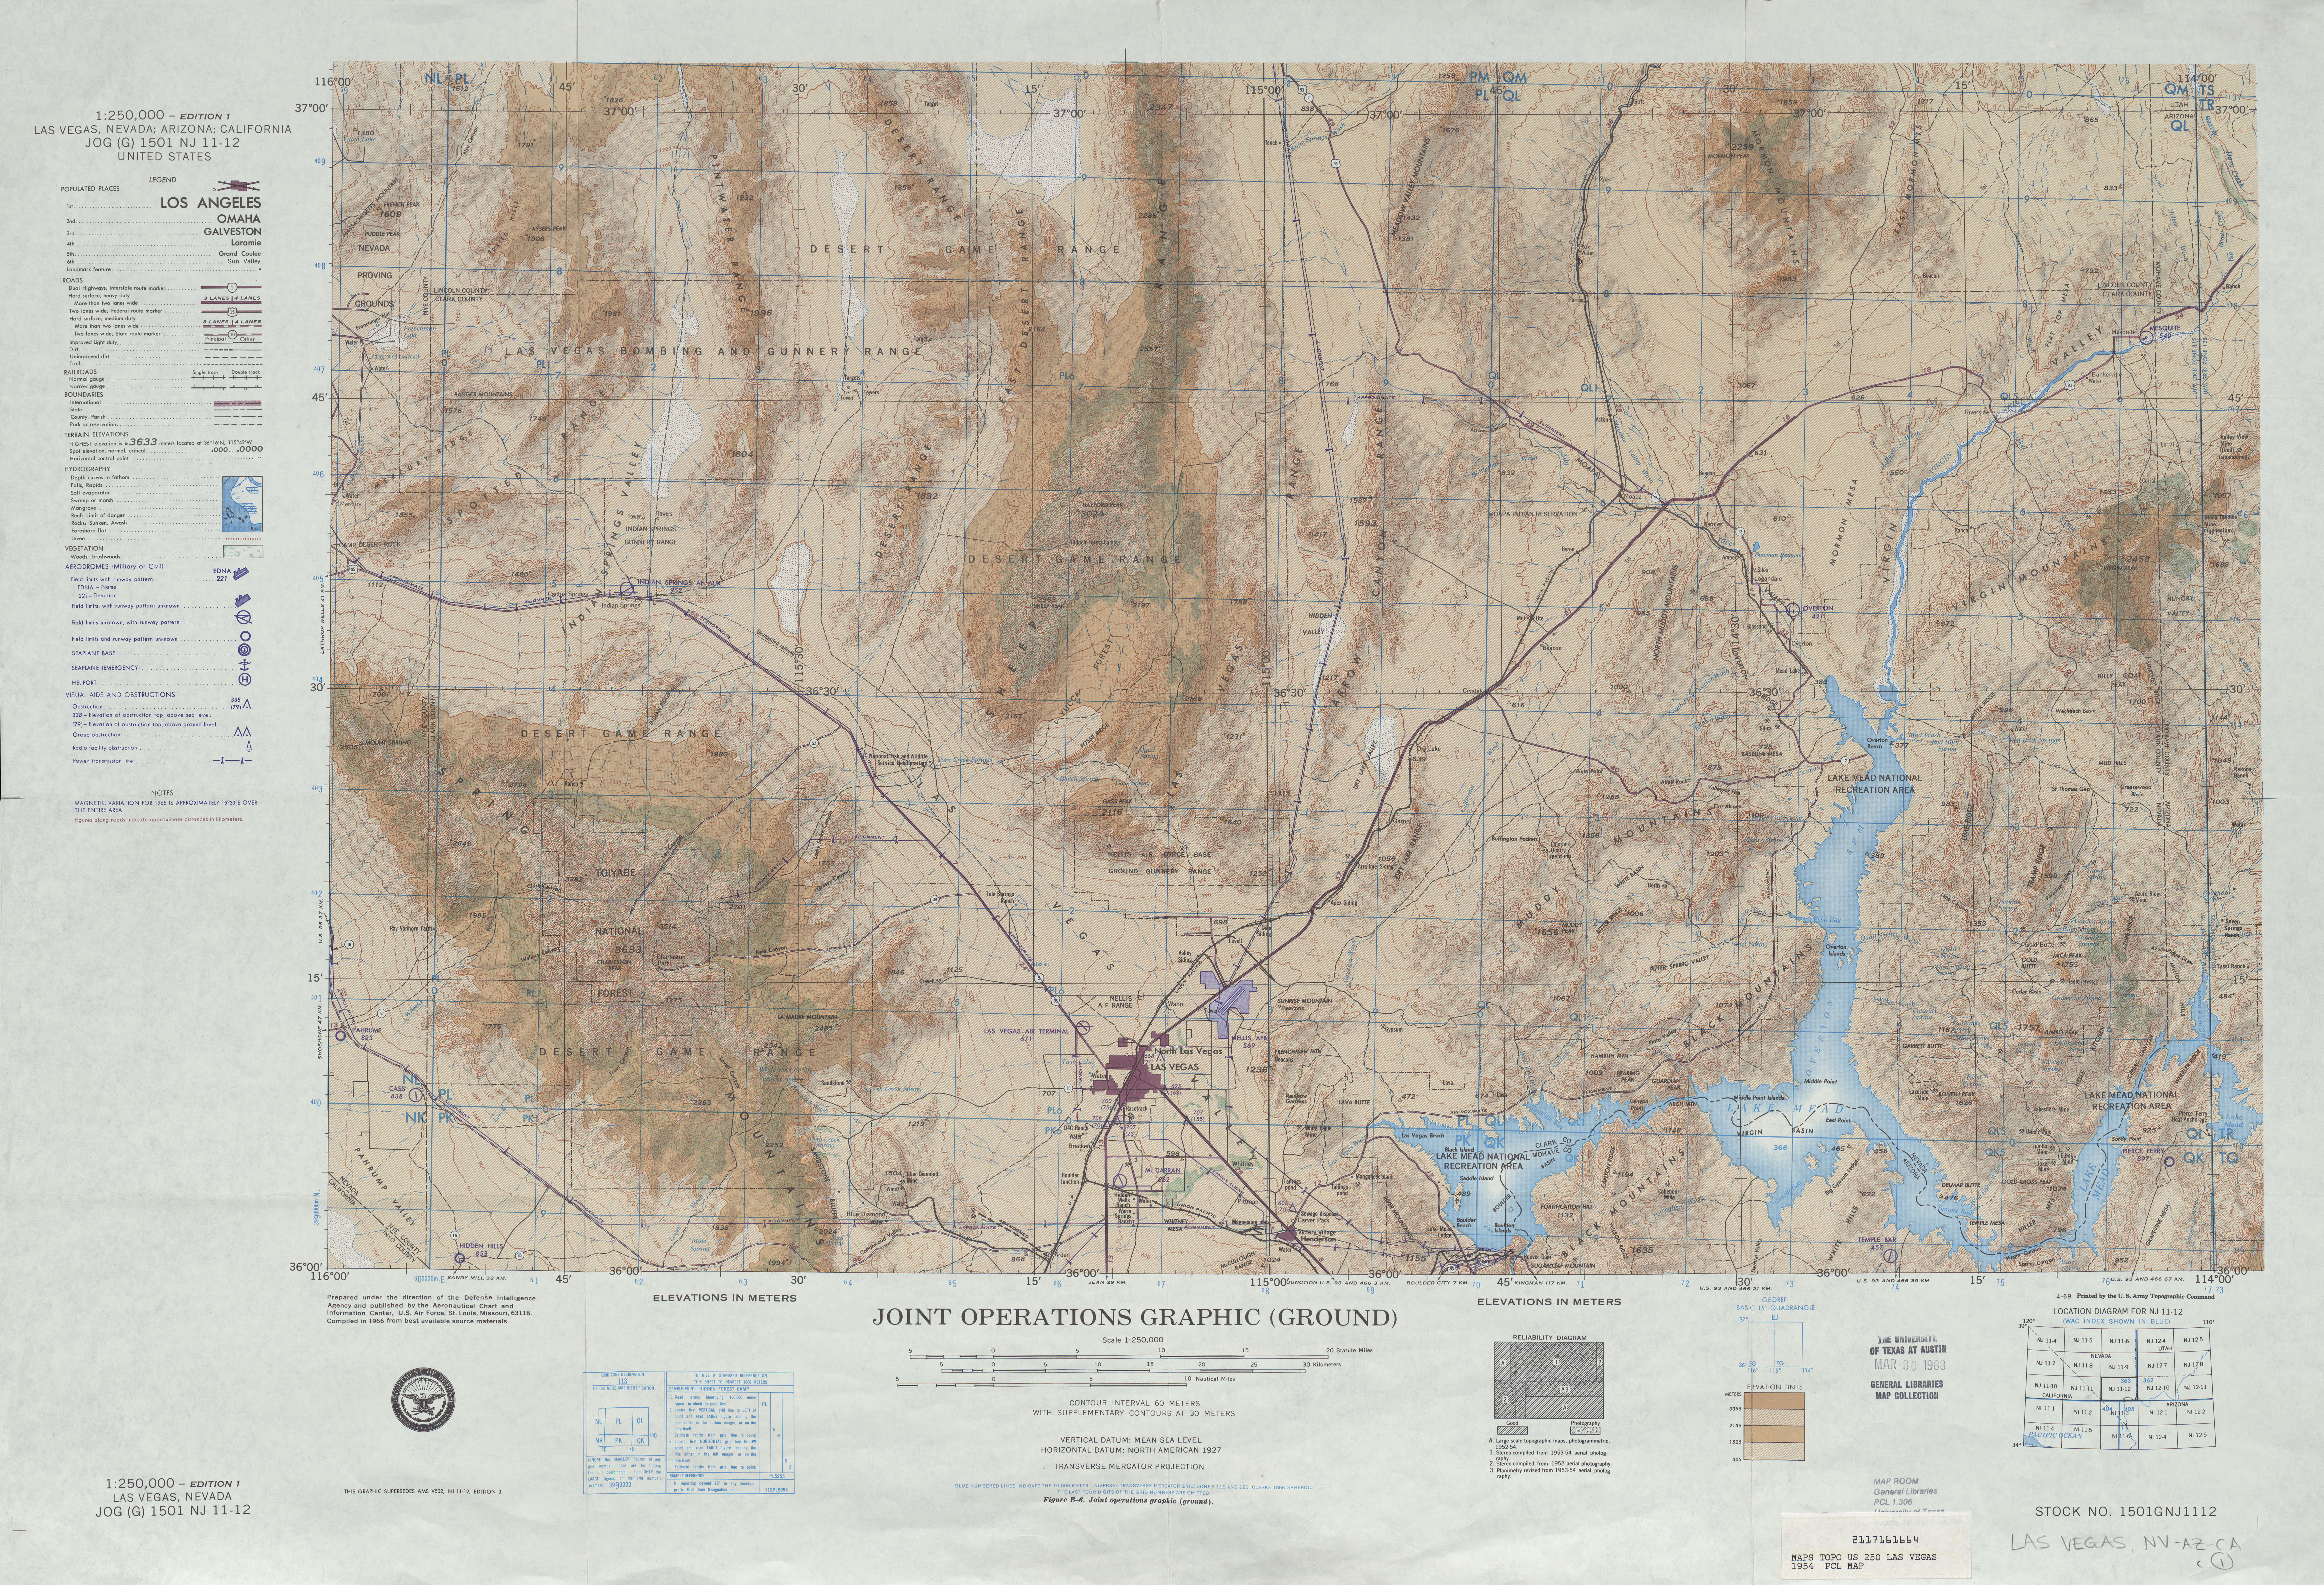 Las Vegas Joint Operations Graphic Sheet, United States 1954